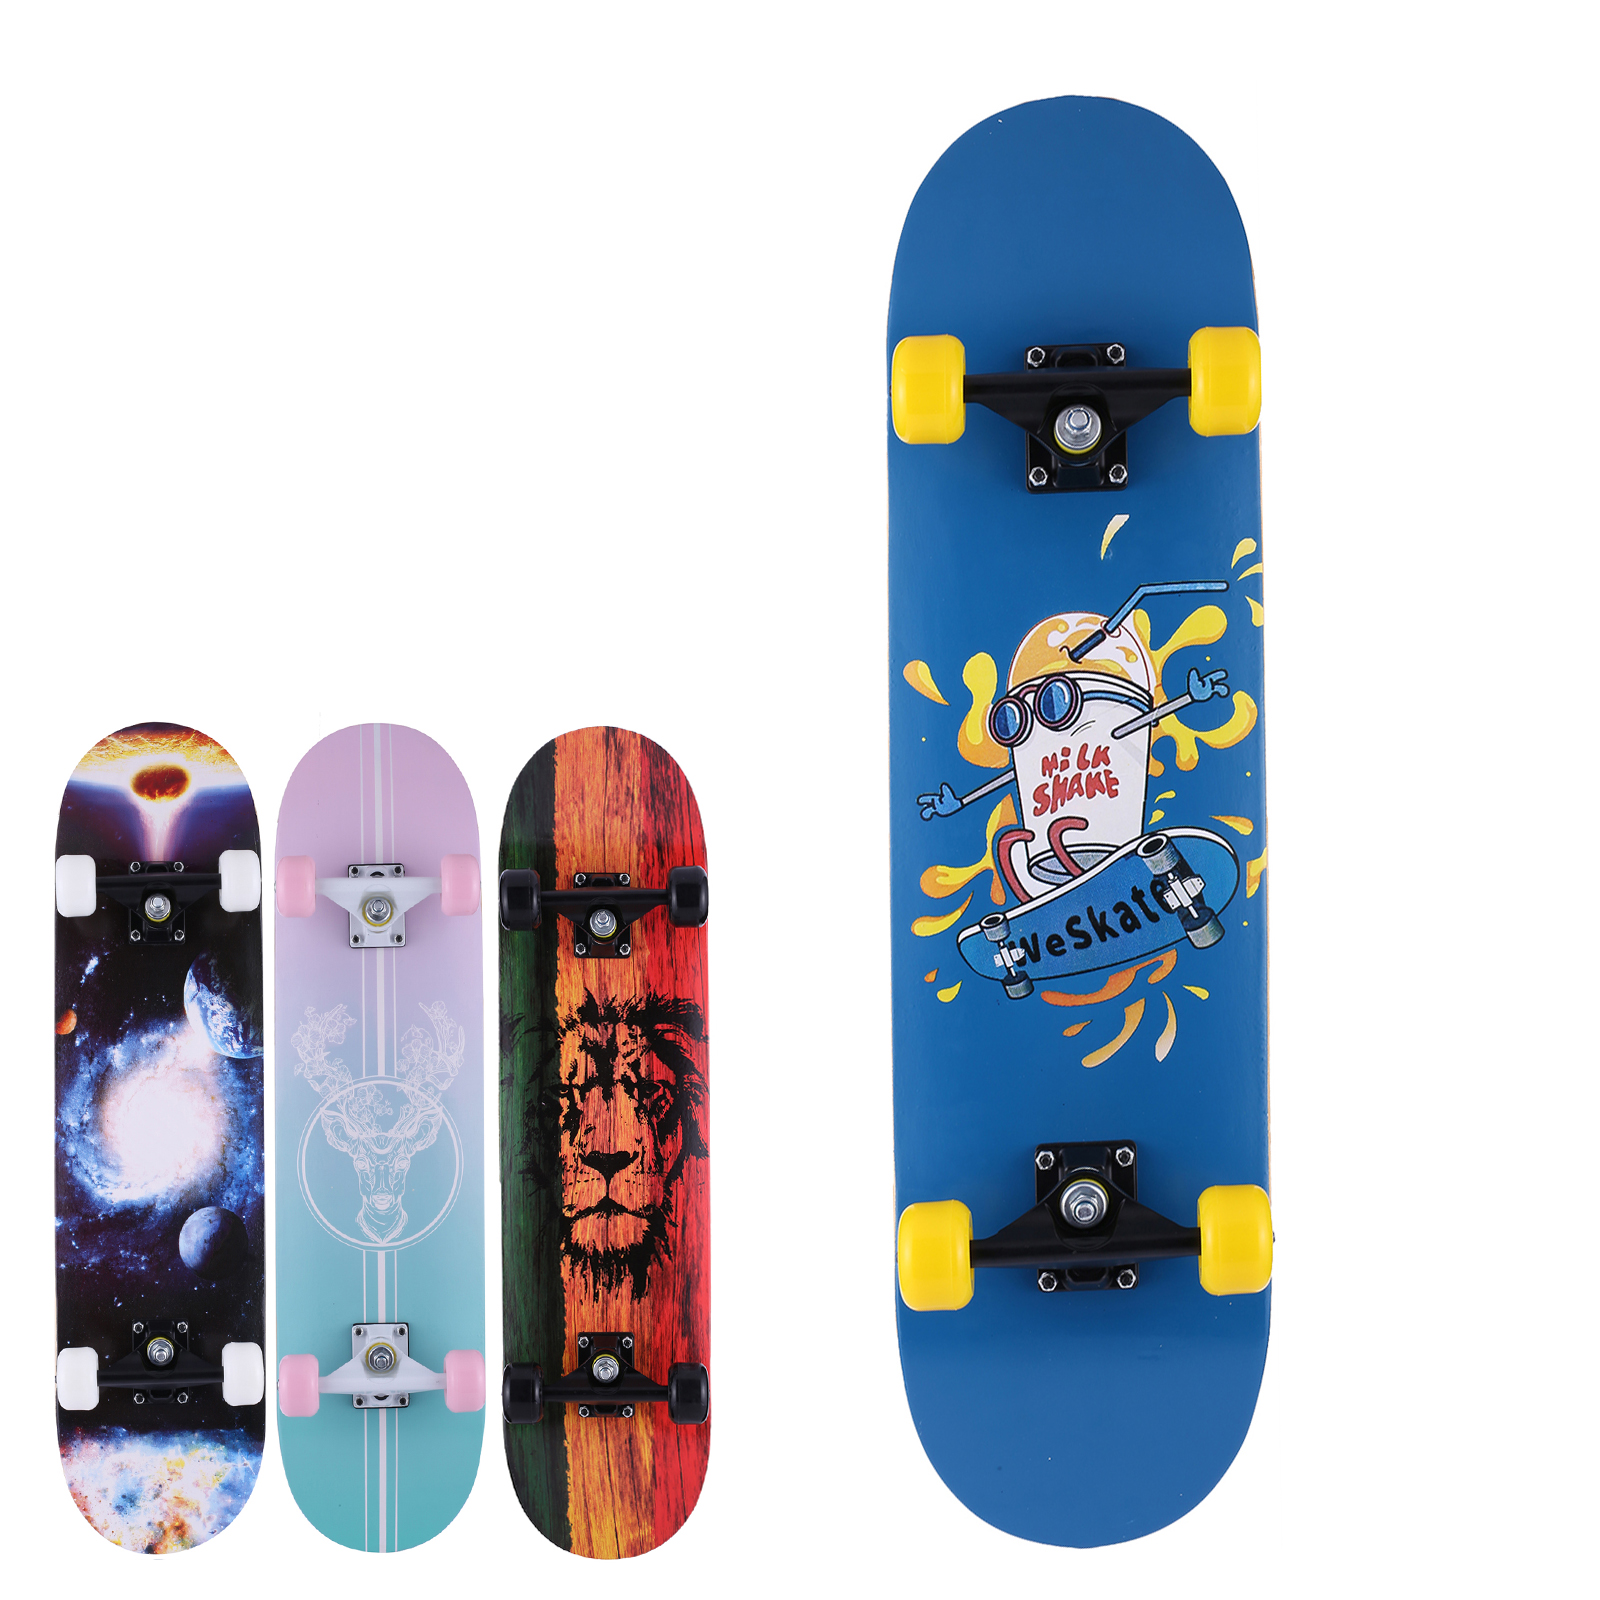 Details about  /Complete Skate Boards Skateboard for Beginners Teens Girls Boys Load 220lbs+LED/_